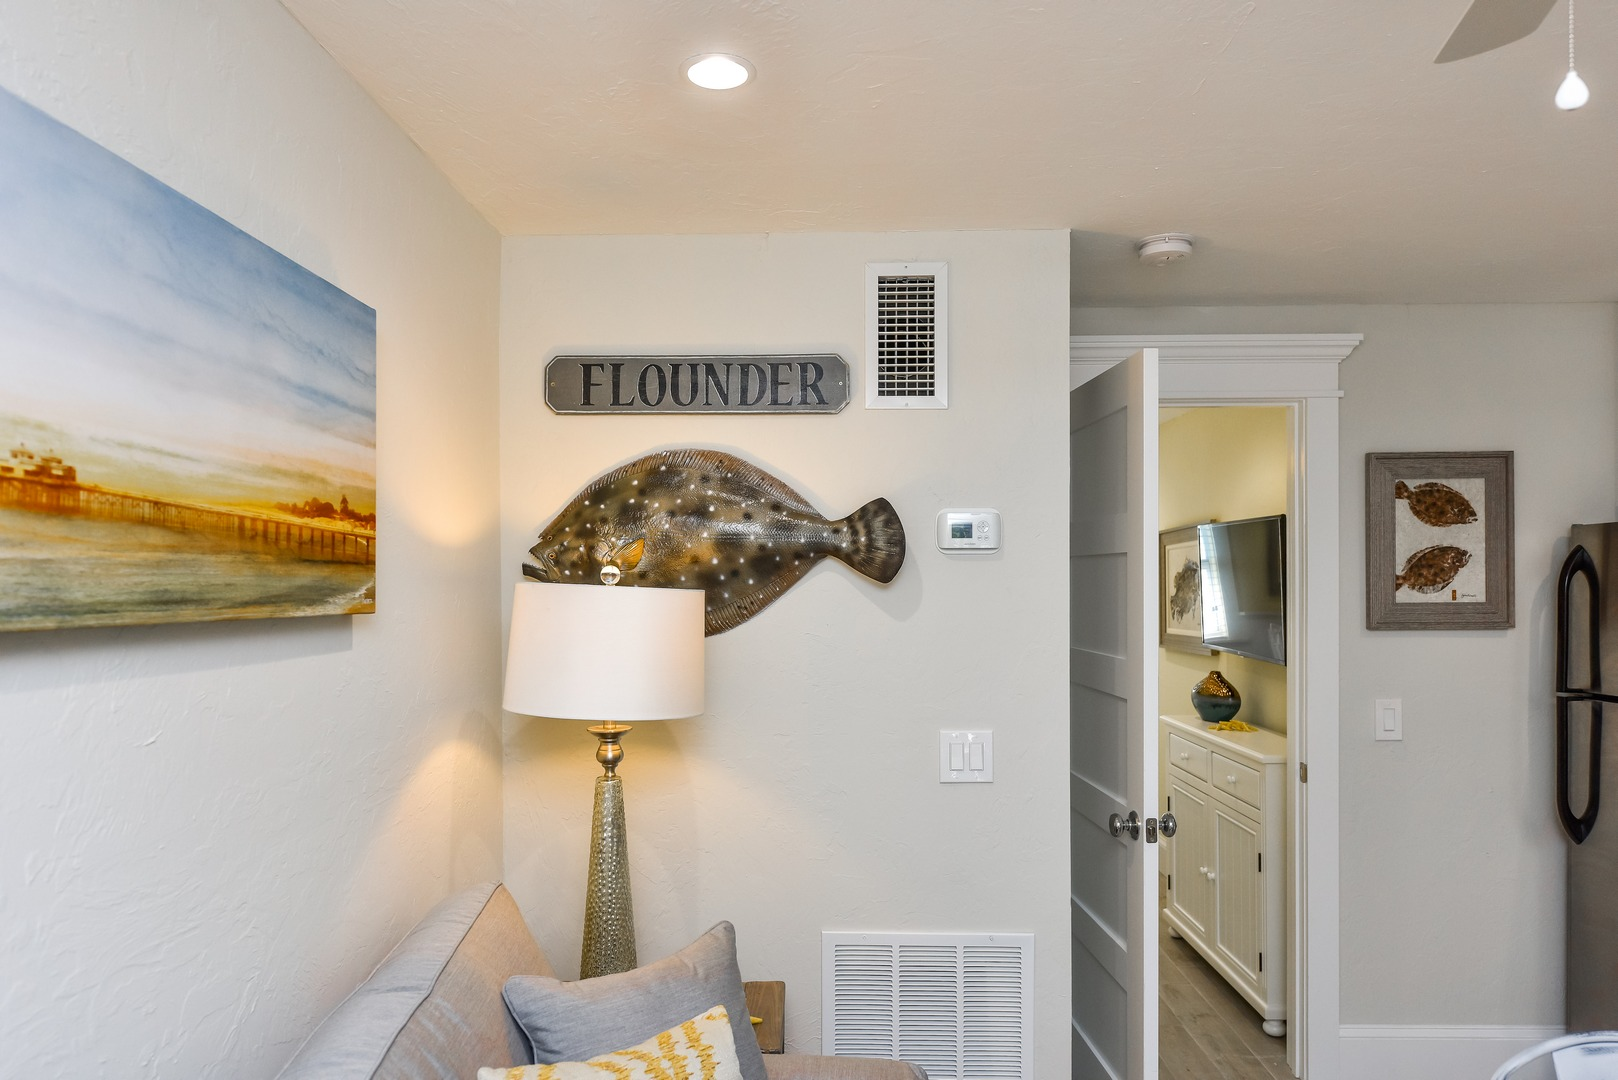 The Flounder - Great Newly Remodeled 1 Bedroom Suite